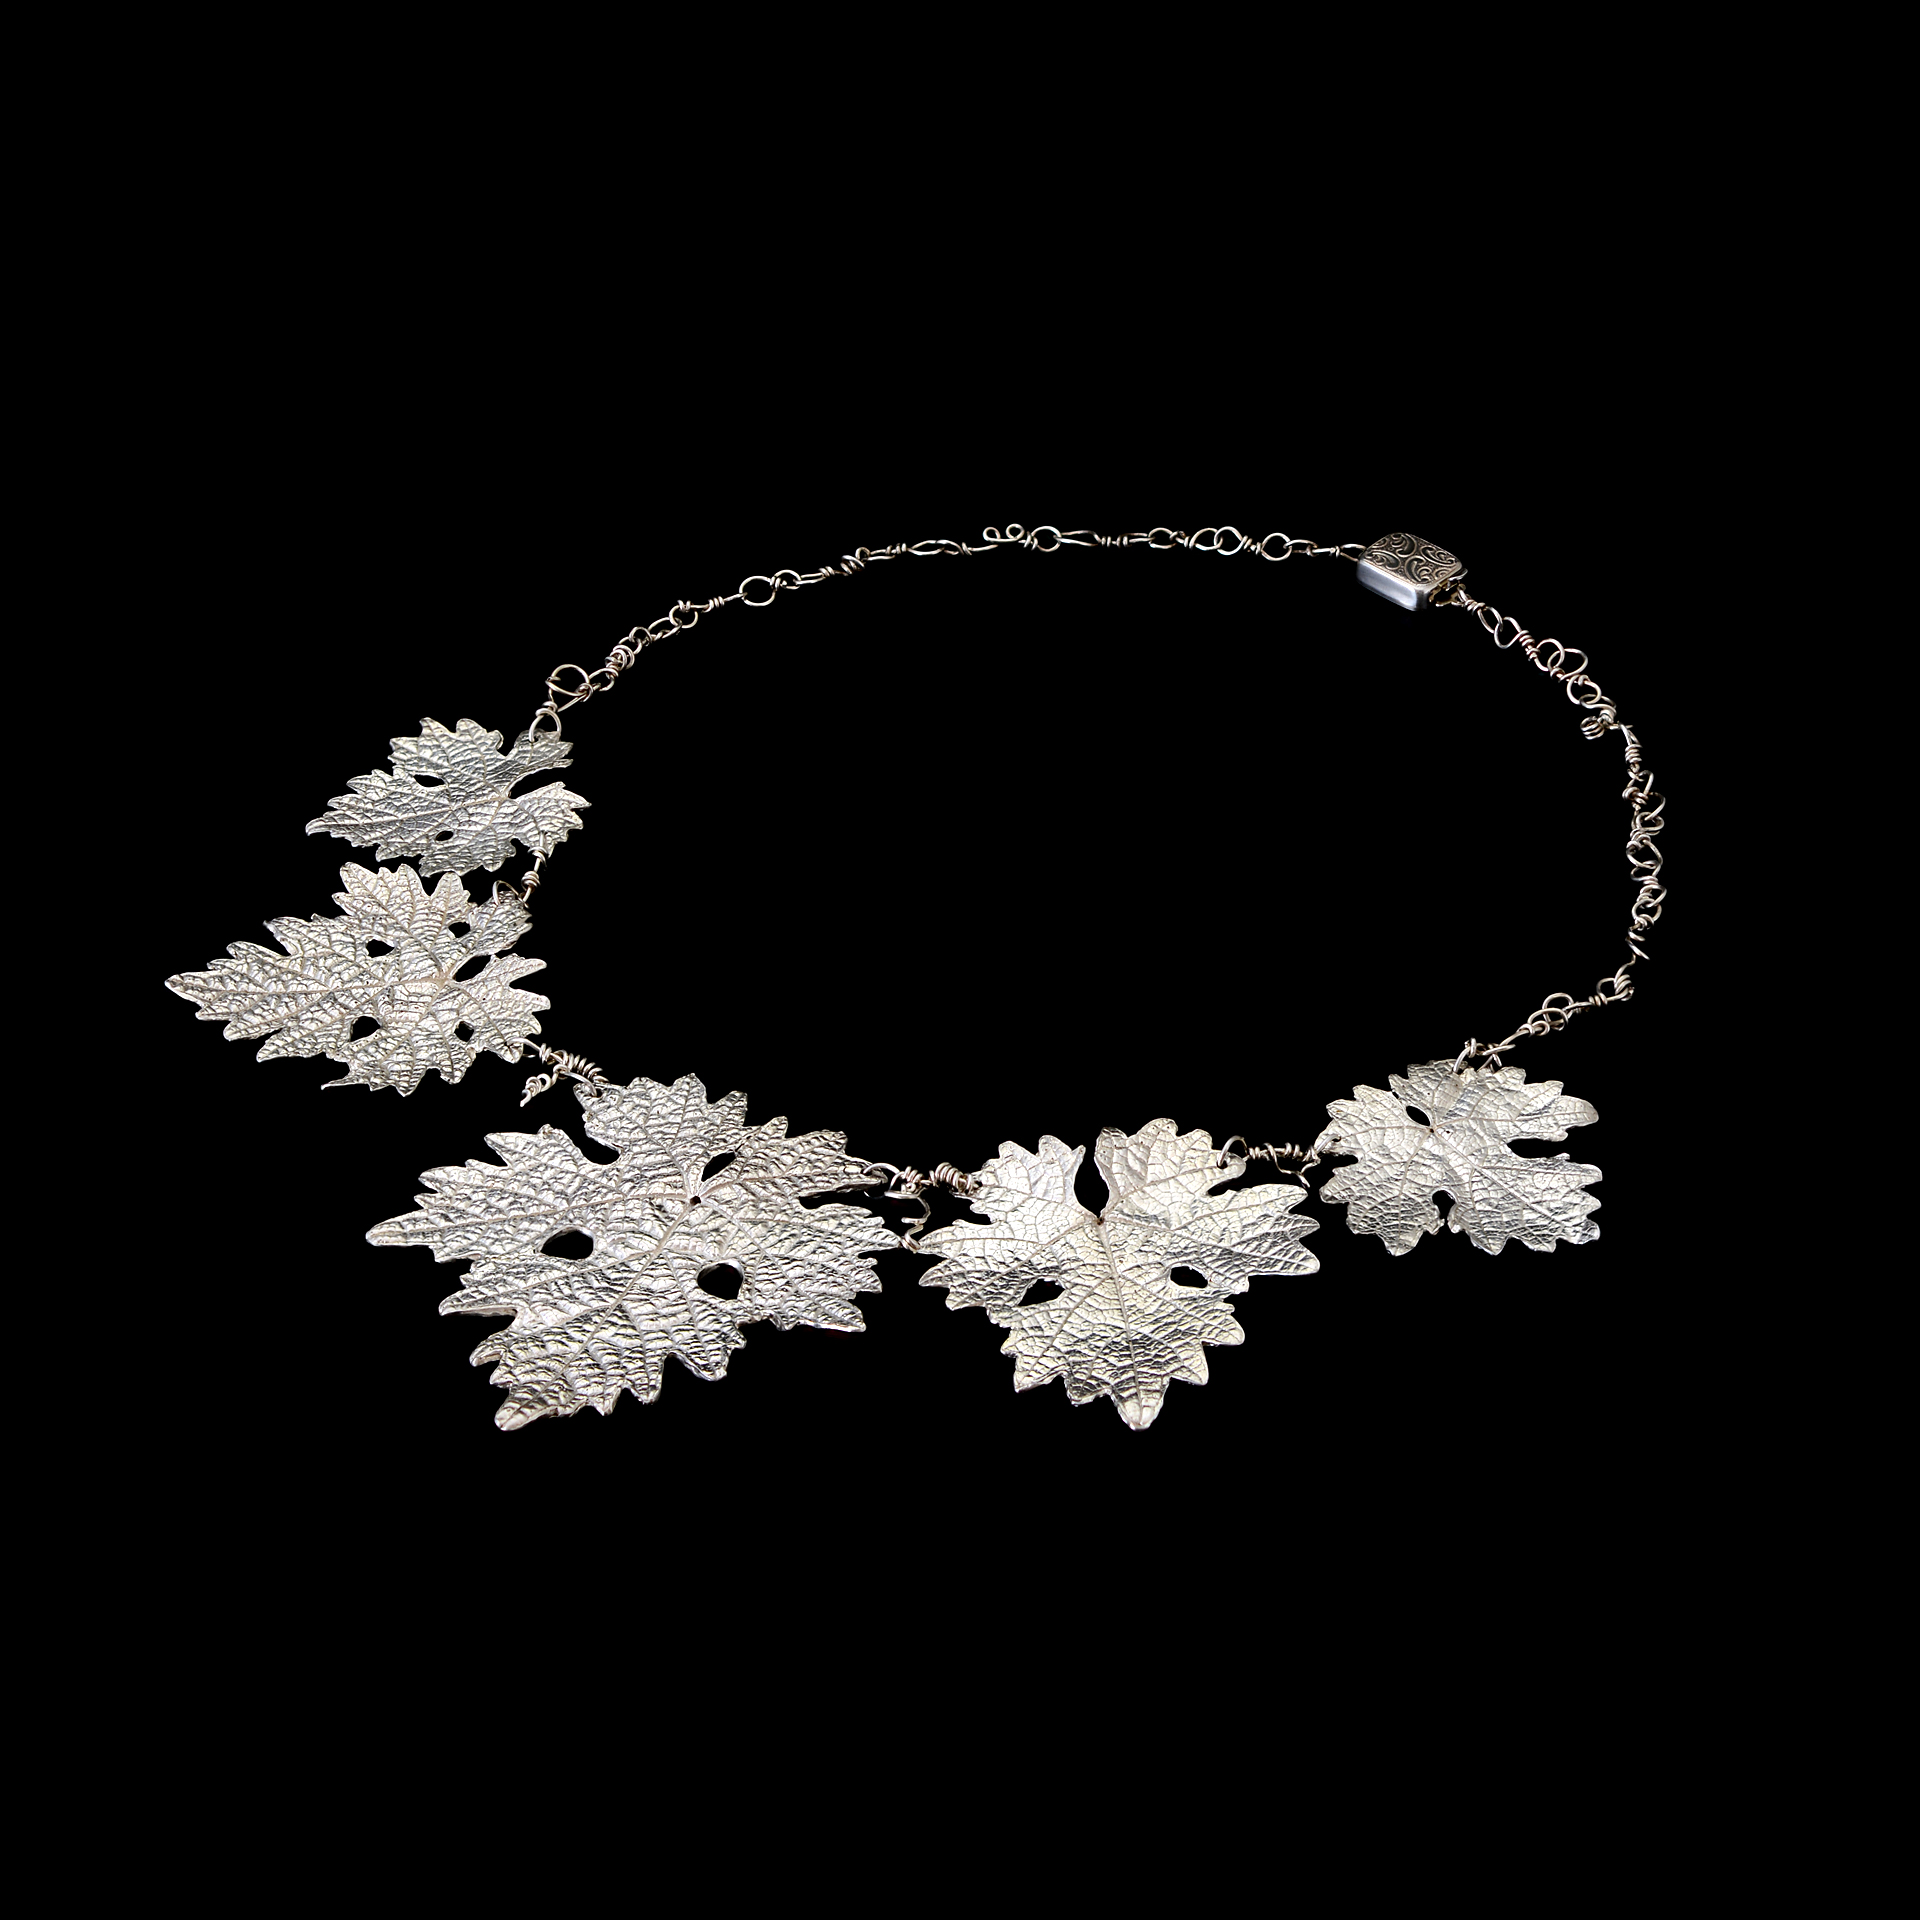 Grape Leaf and tendril chain Necklace  Recycled Fine Silver, Sterling